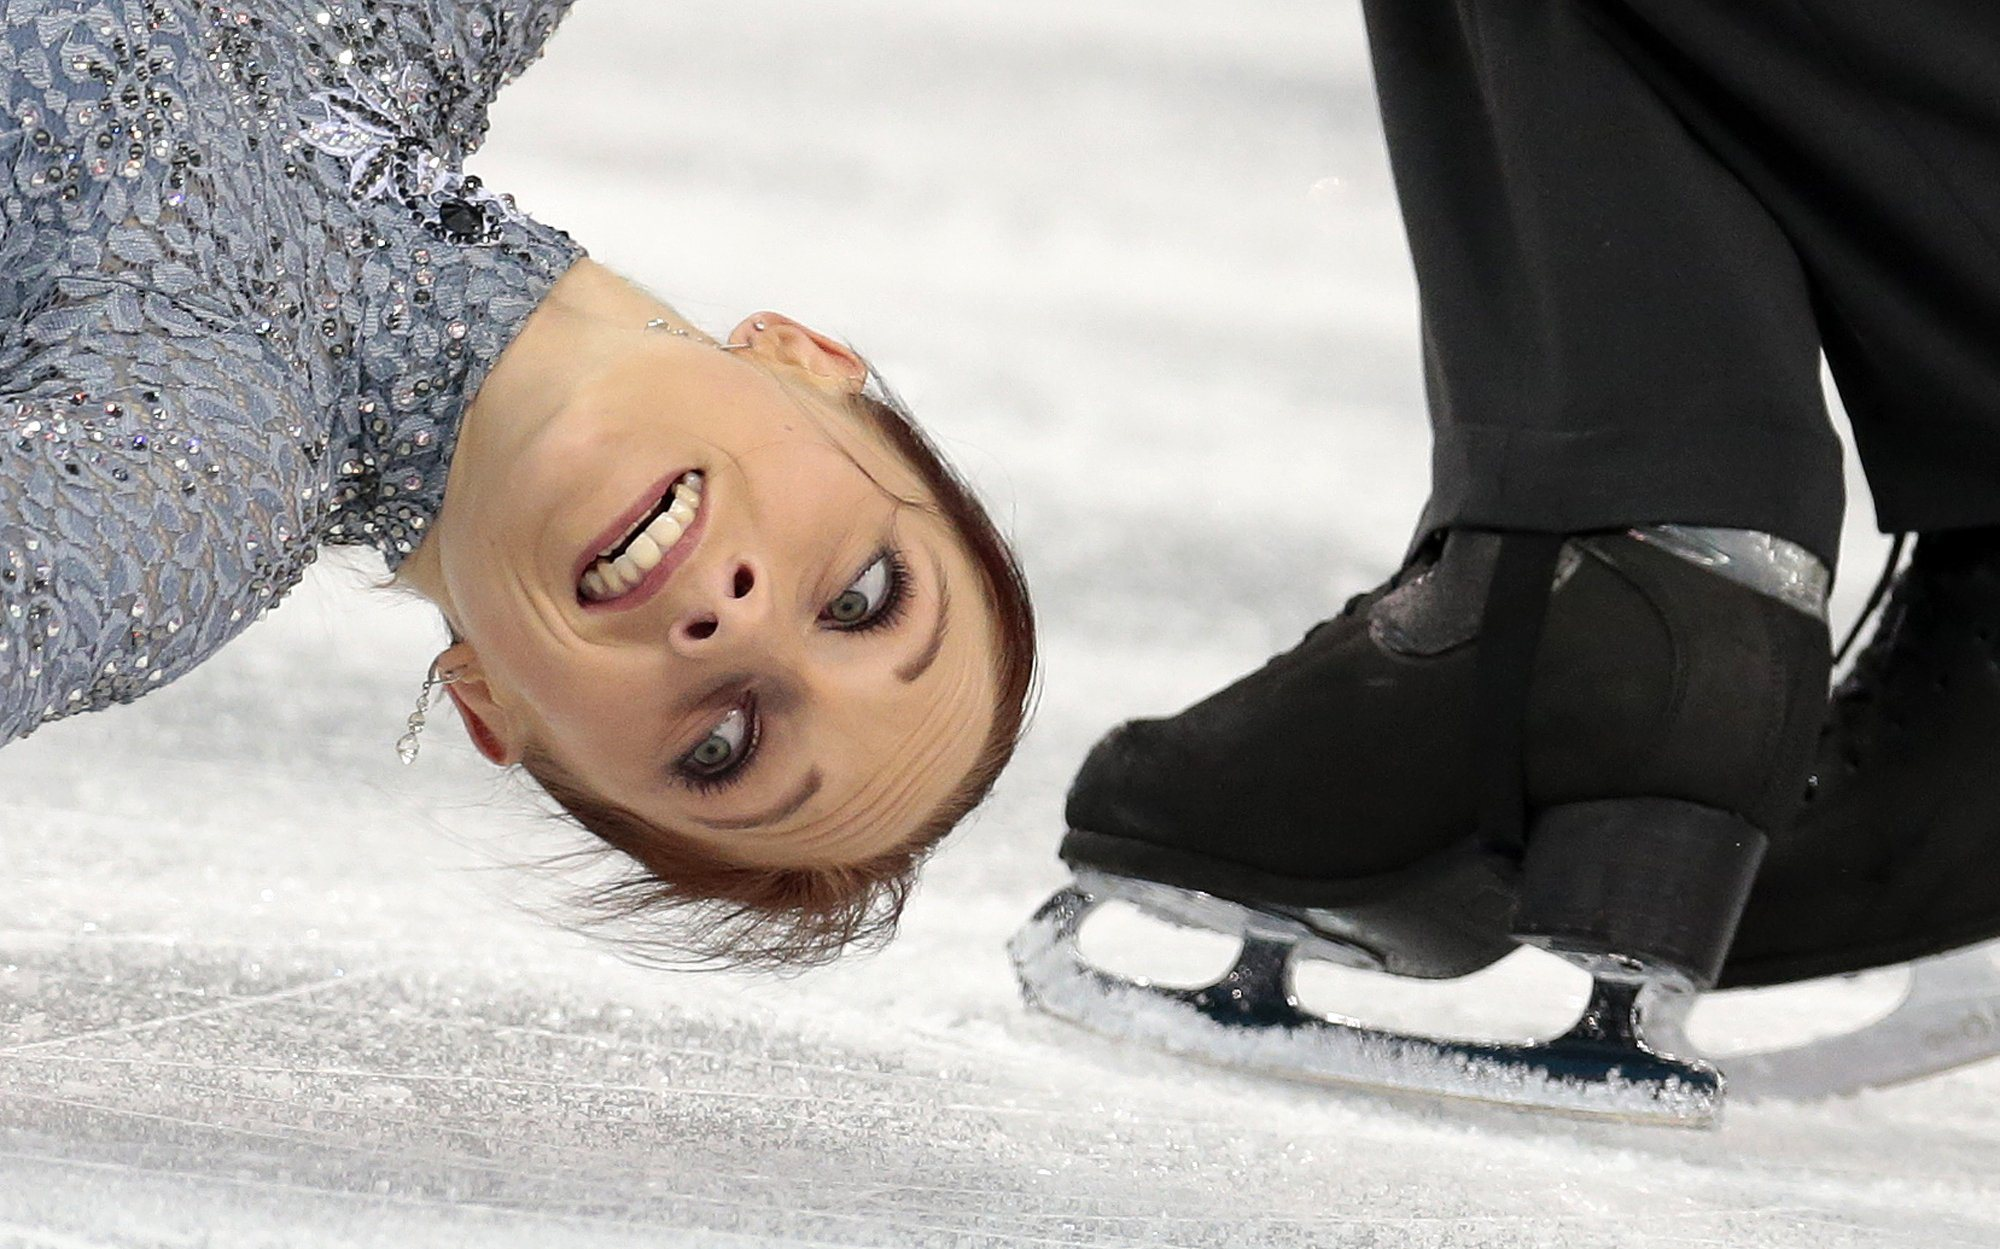 Maylin Wende and Daniel Wende of Germany compete in the team pairs short program figure skating competition at the Iceberg Skating Palace during the 2014 Winter Olympics, Feb. 6, 2014.